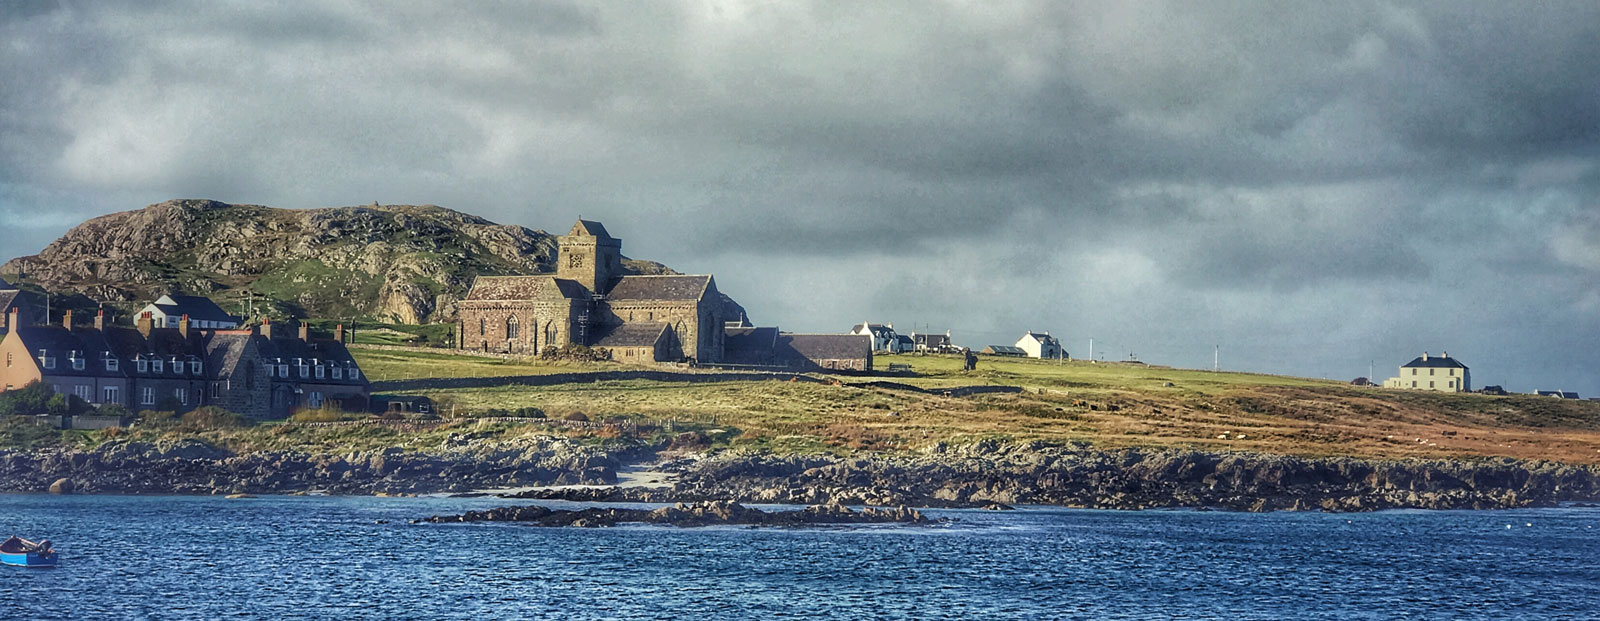 A Picture of Iona and Colmcille's monastery